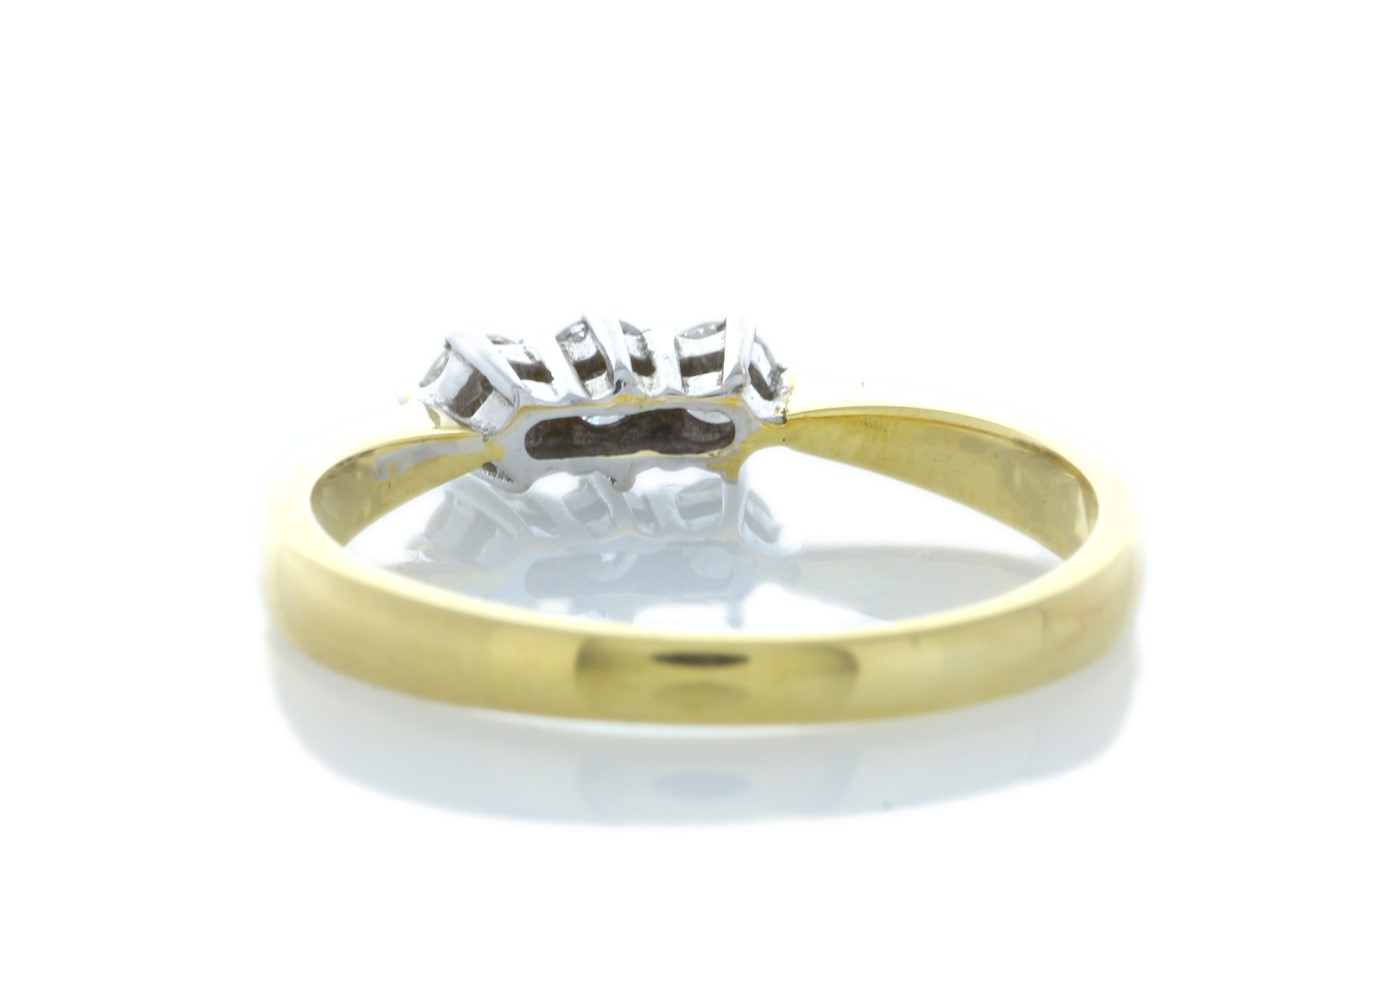 9ct Yellow Gold Three Stone Claw Set Diamond Ring 0.25 Carats - Image 3 of 4